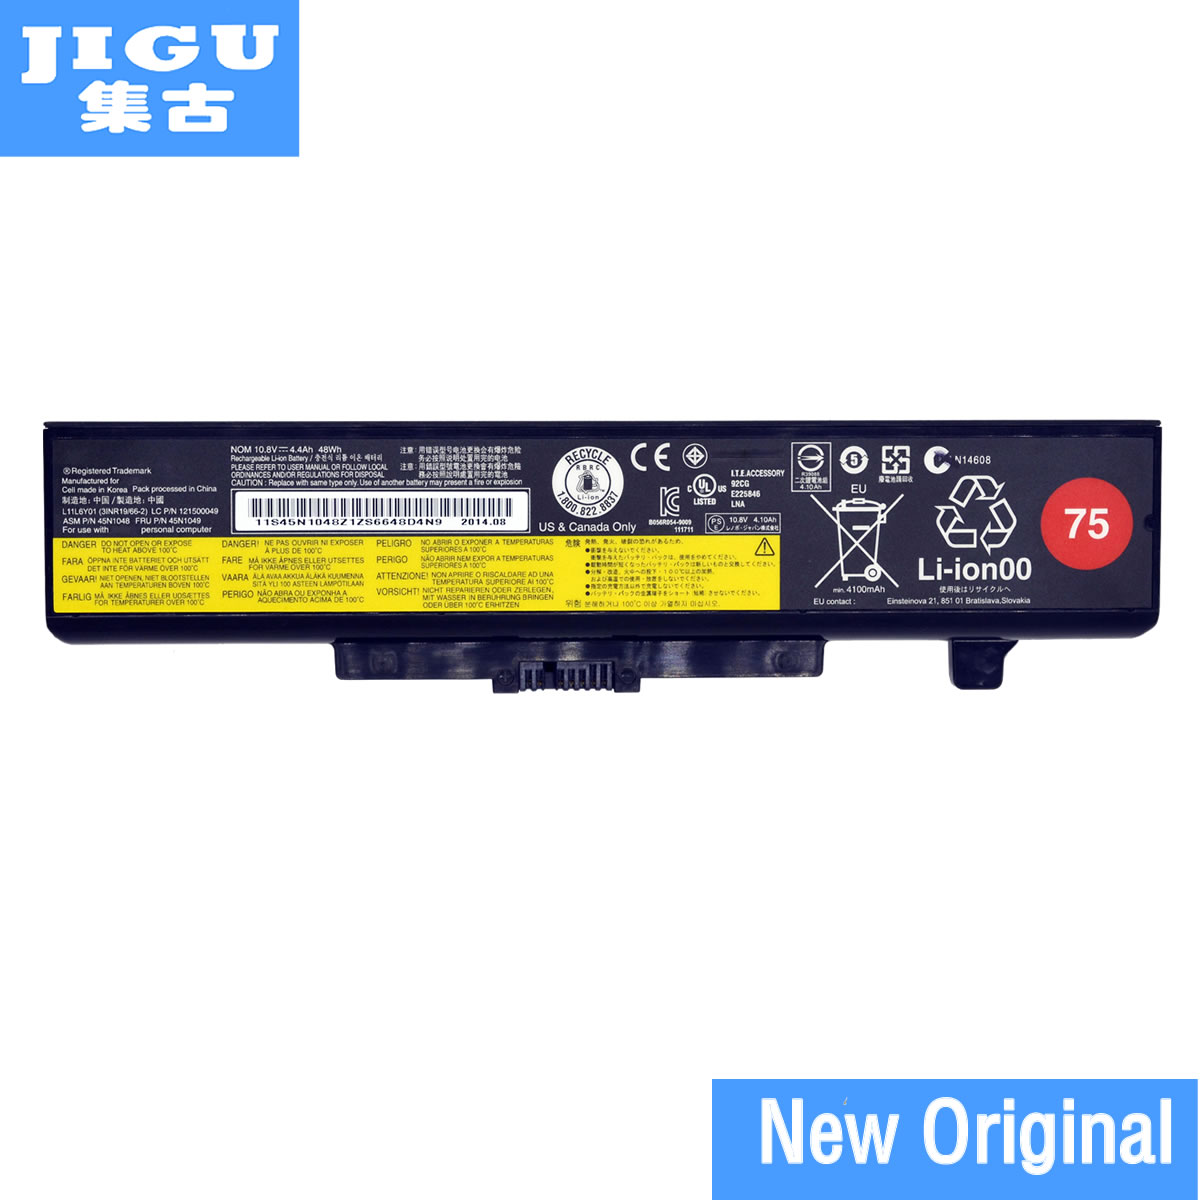 JIGU Original Laptop Battery For Lenovo V580 V580C Y480 Y480P Y485 Y580 Y580A Z380 Z480 Z485 Z580 Z585 V480S V480u